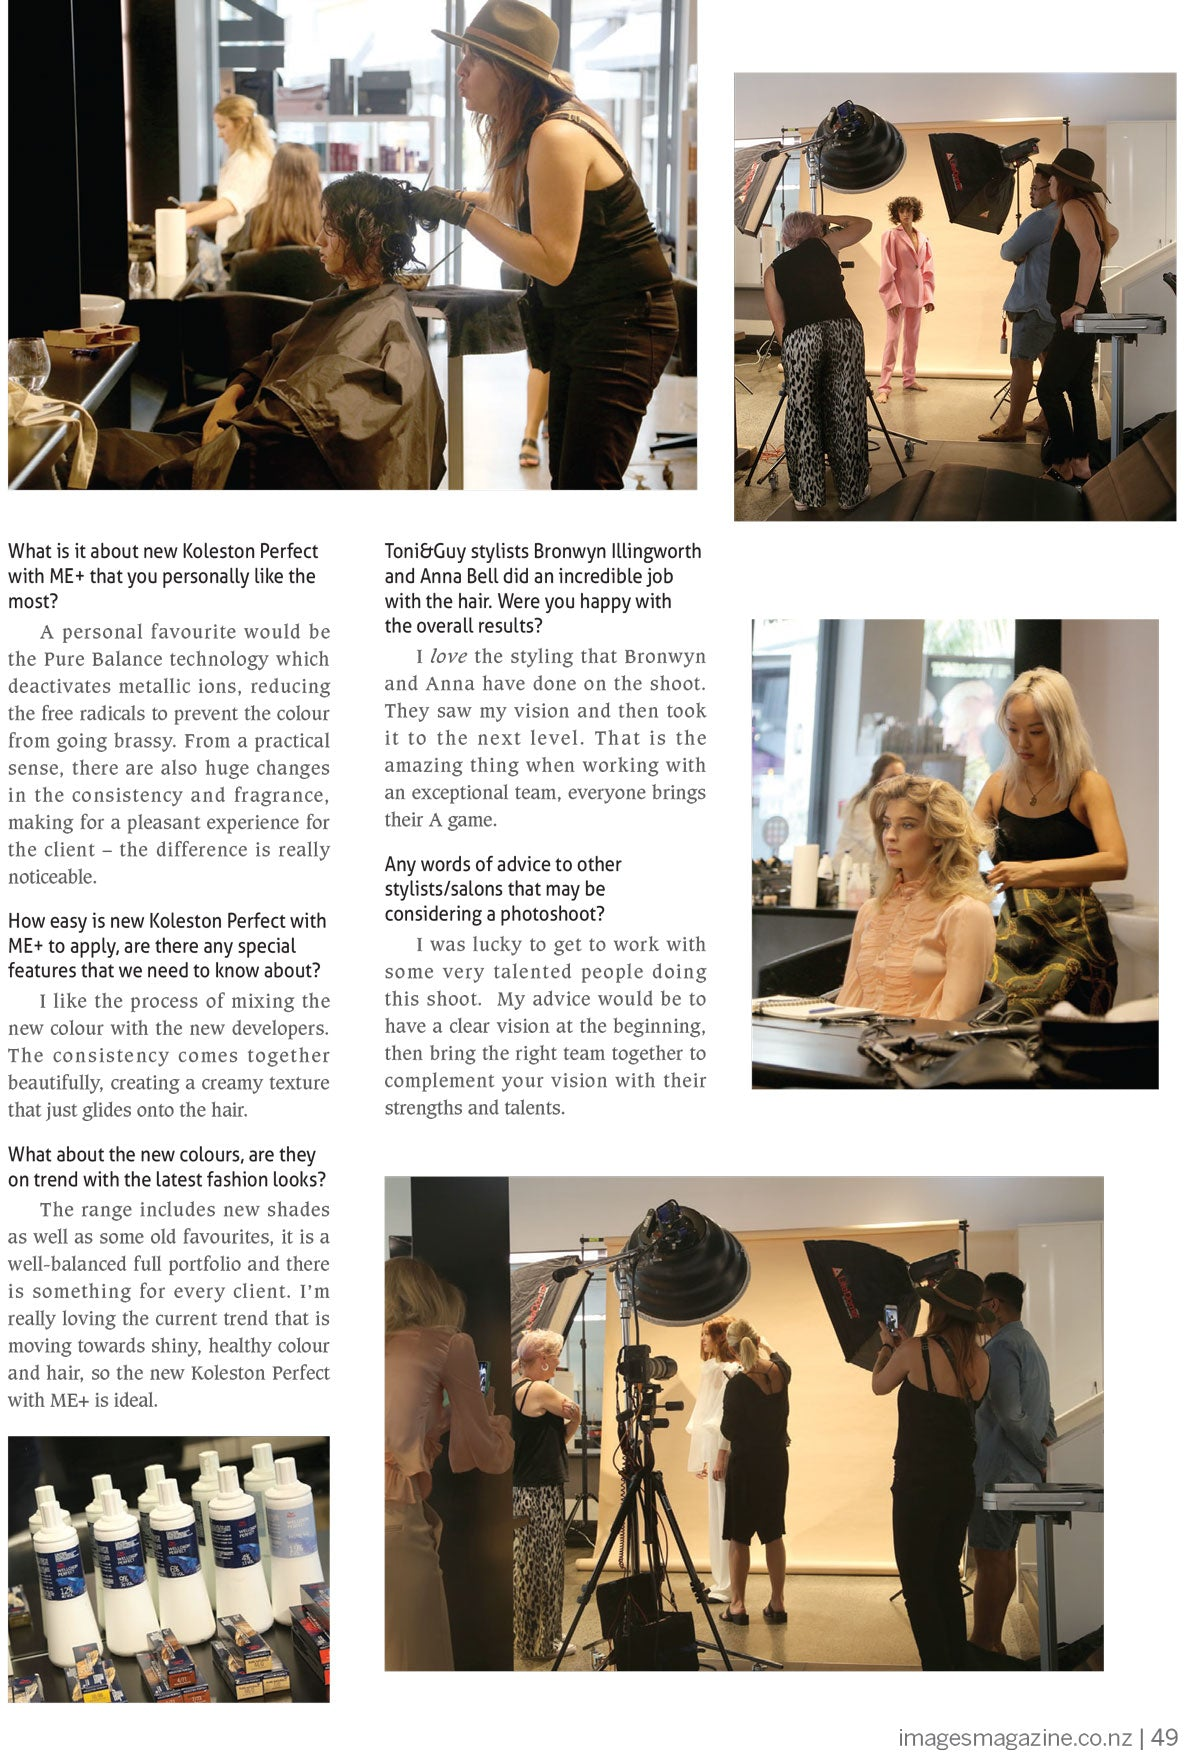 Toni&Guy Wella, Images Magazine & Josie Wignall collaborate to showcase the new Koleston Perfect Colour with ME+. Cinnamon Scholes Art Directored the shoot done in our Chancery Square Salon.